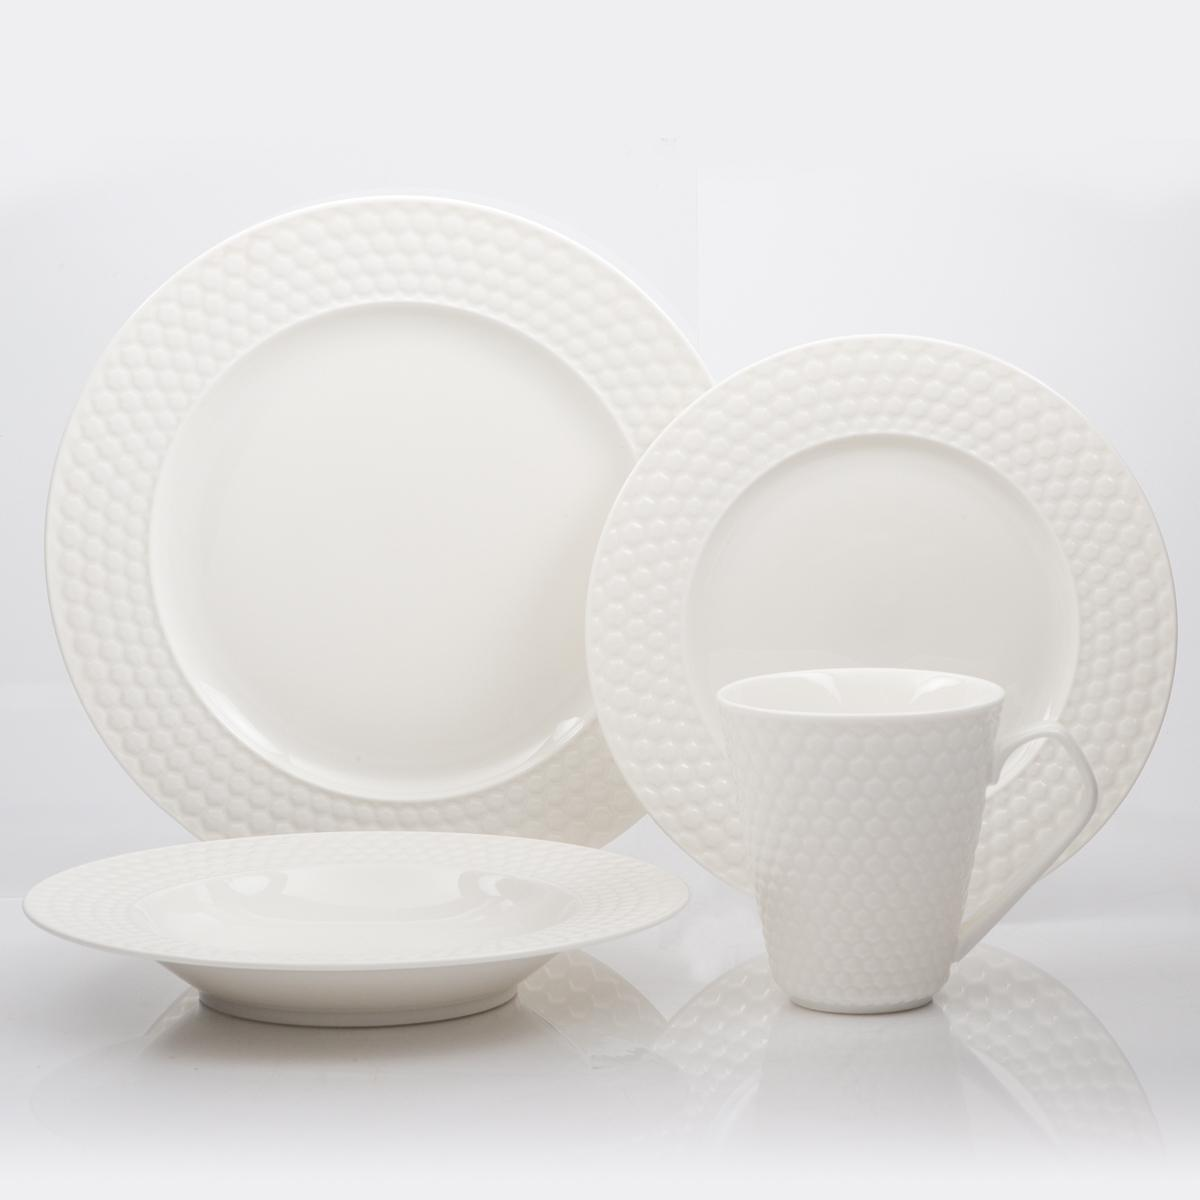 16 Pc Set Porcelain Dinnerware Chailles Collection & Cuisinart 16-Piece Dinnerware Set Windflower Collection: Amazon.ca ...